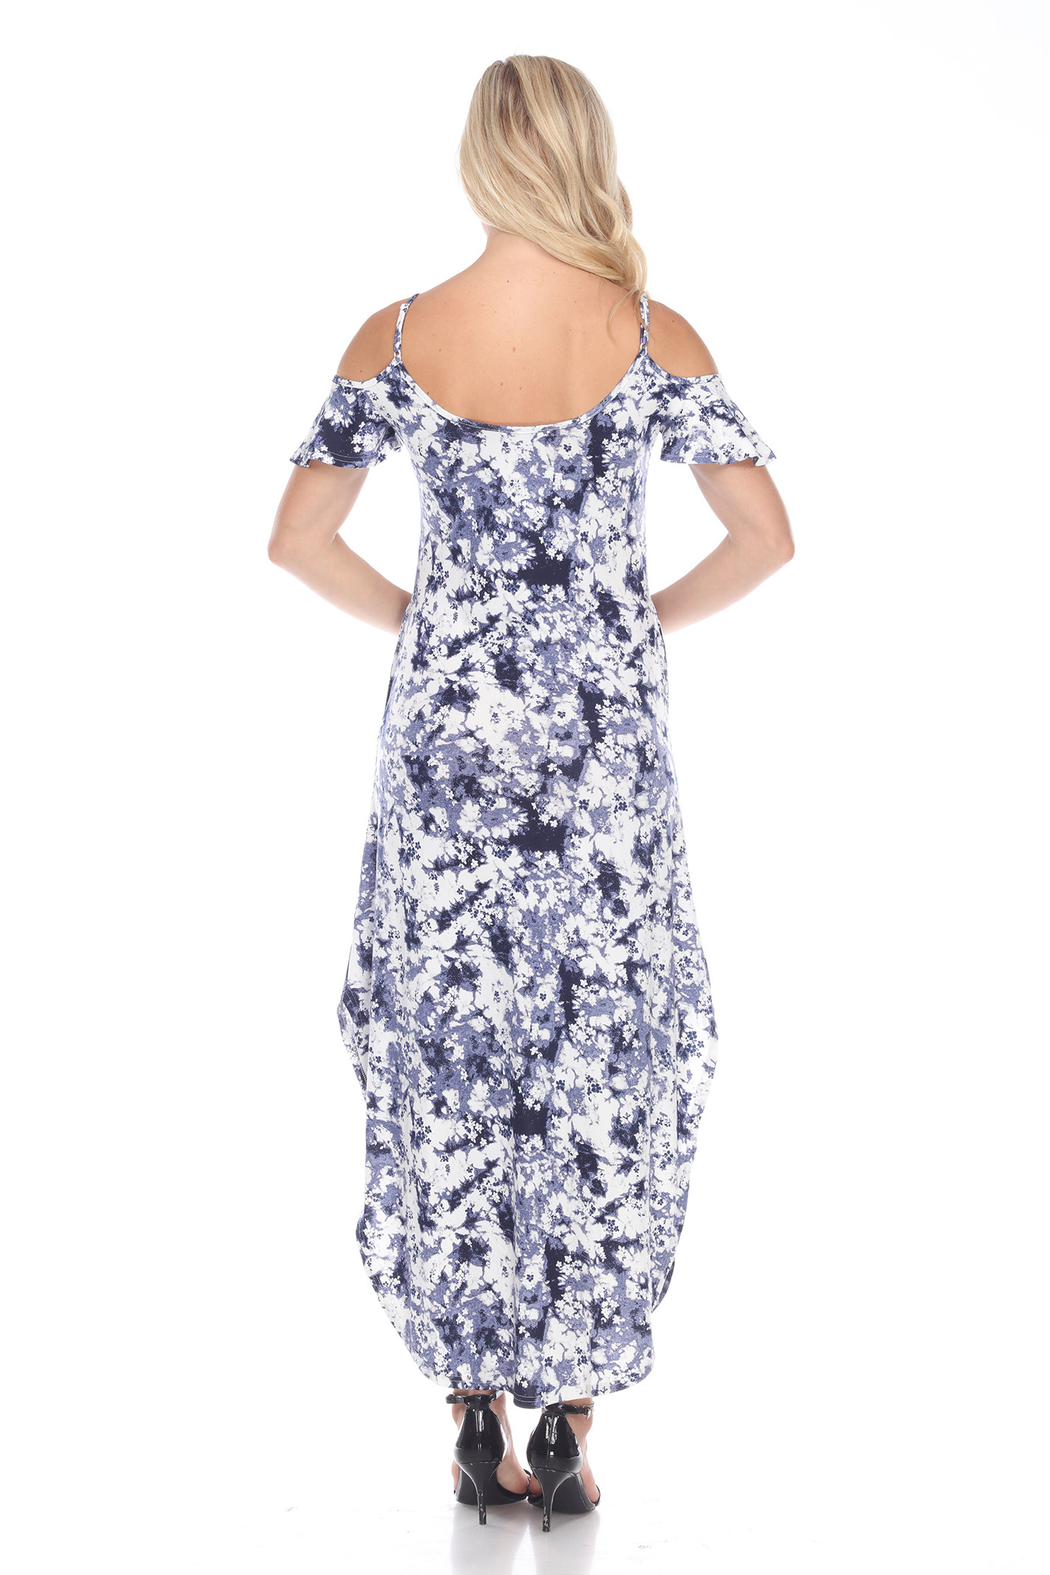 WhiteMark 's Maternity Cold Shoulder Tie-Dye Maxi Dress - Front Full Image